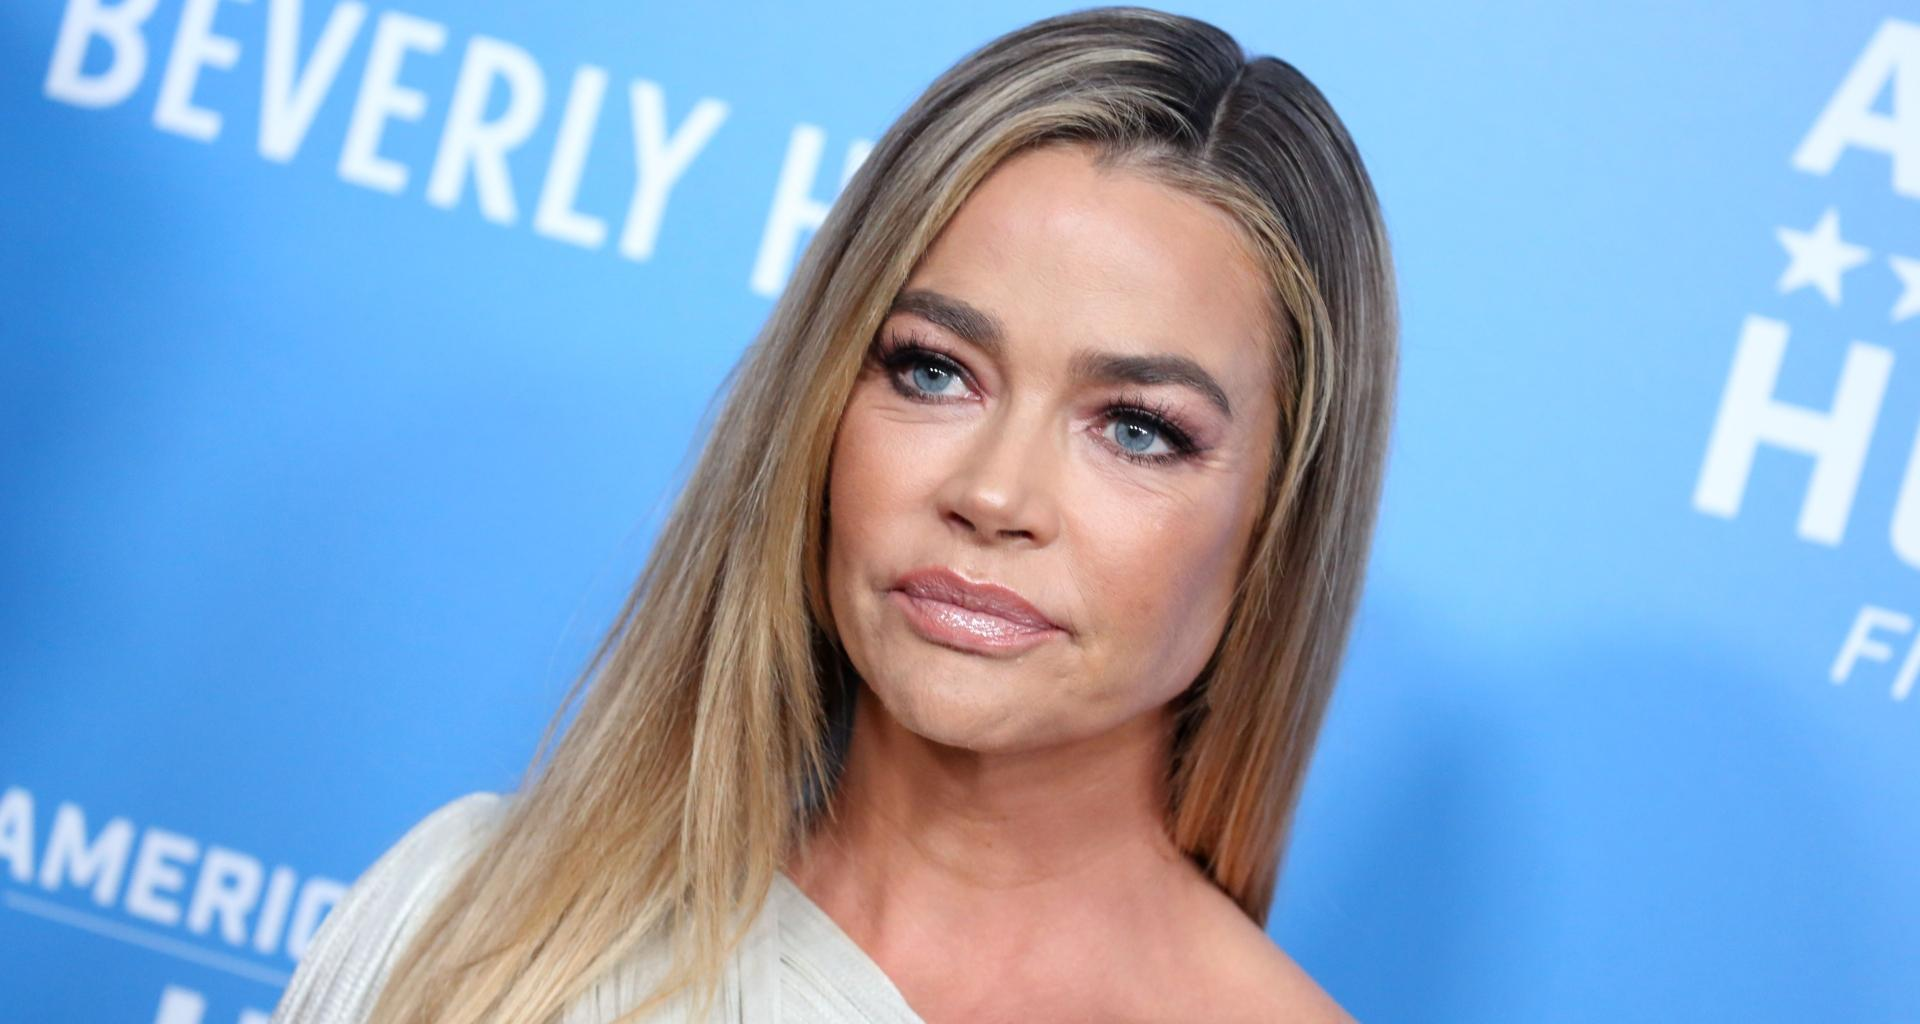 Denise Richards - Does She Regret Joining RHOBH Amid The Puppygate Drama?